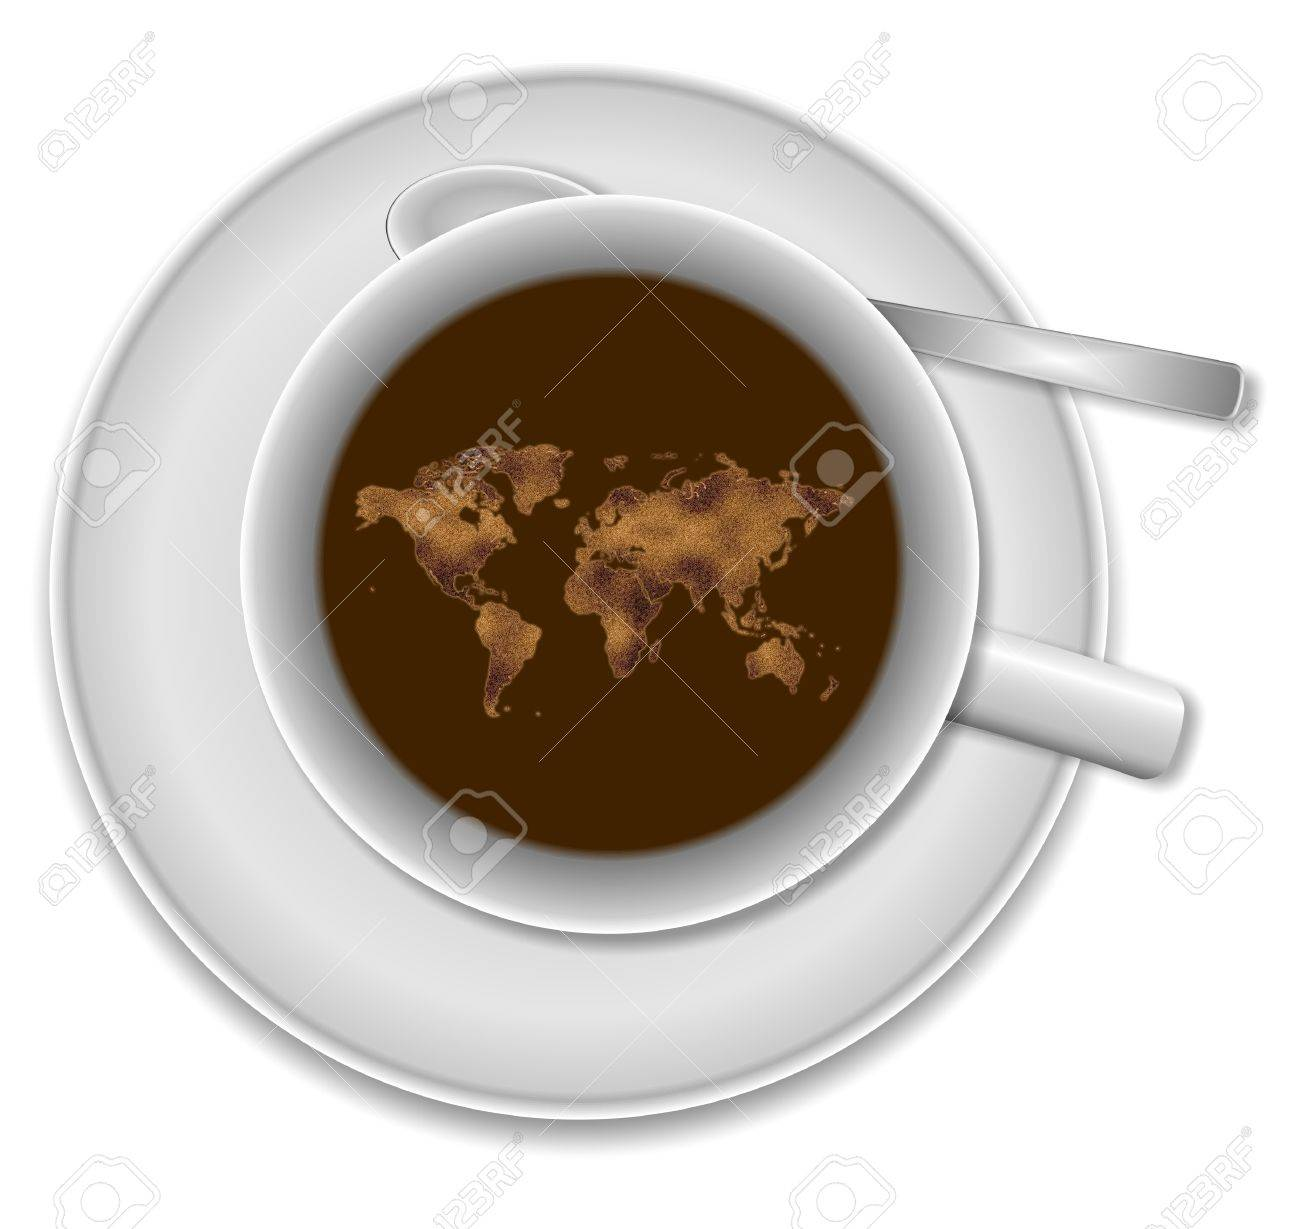 White Cup Of Coffee And World Map Floating In It Stock Photo